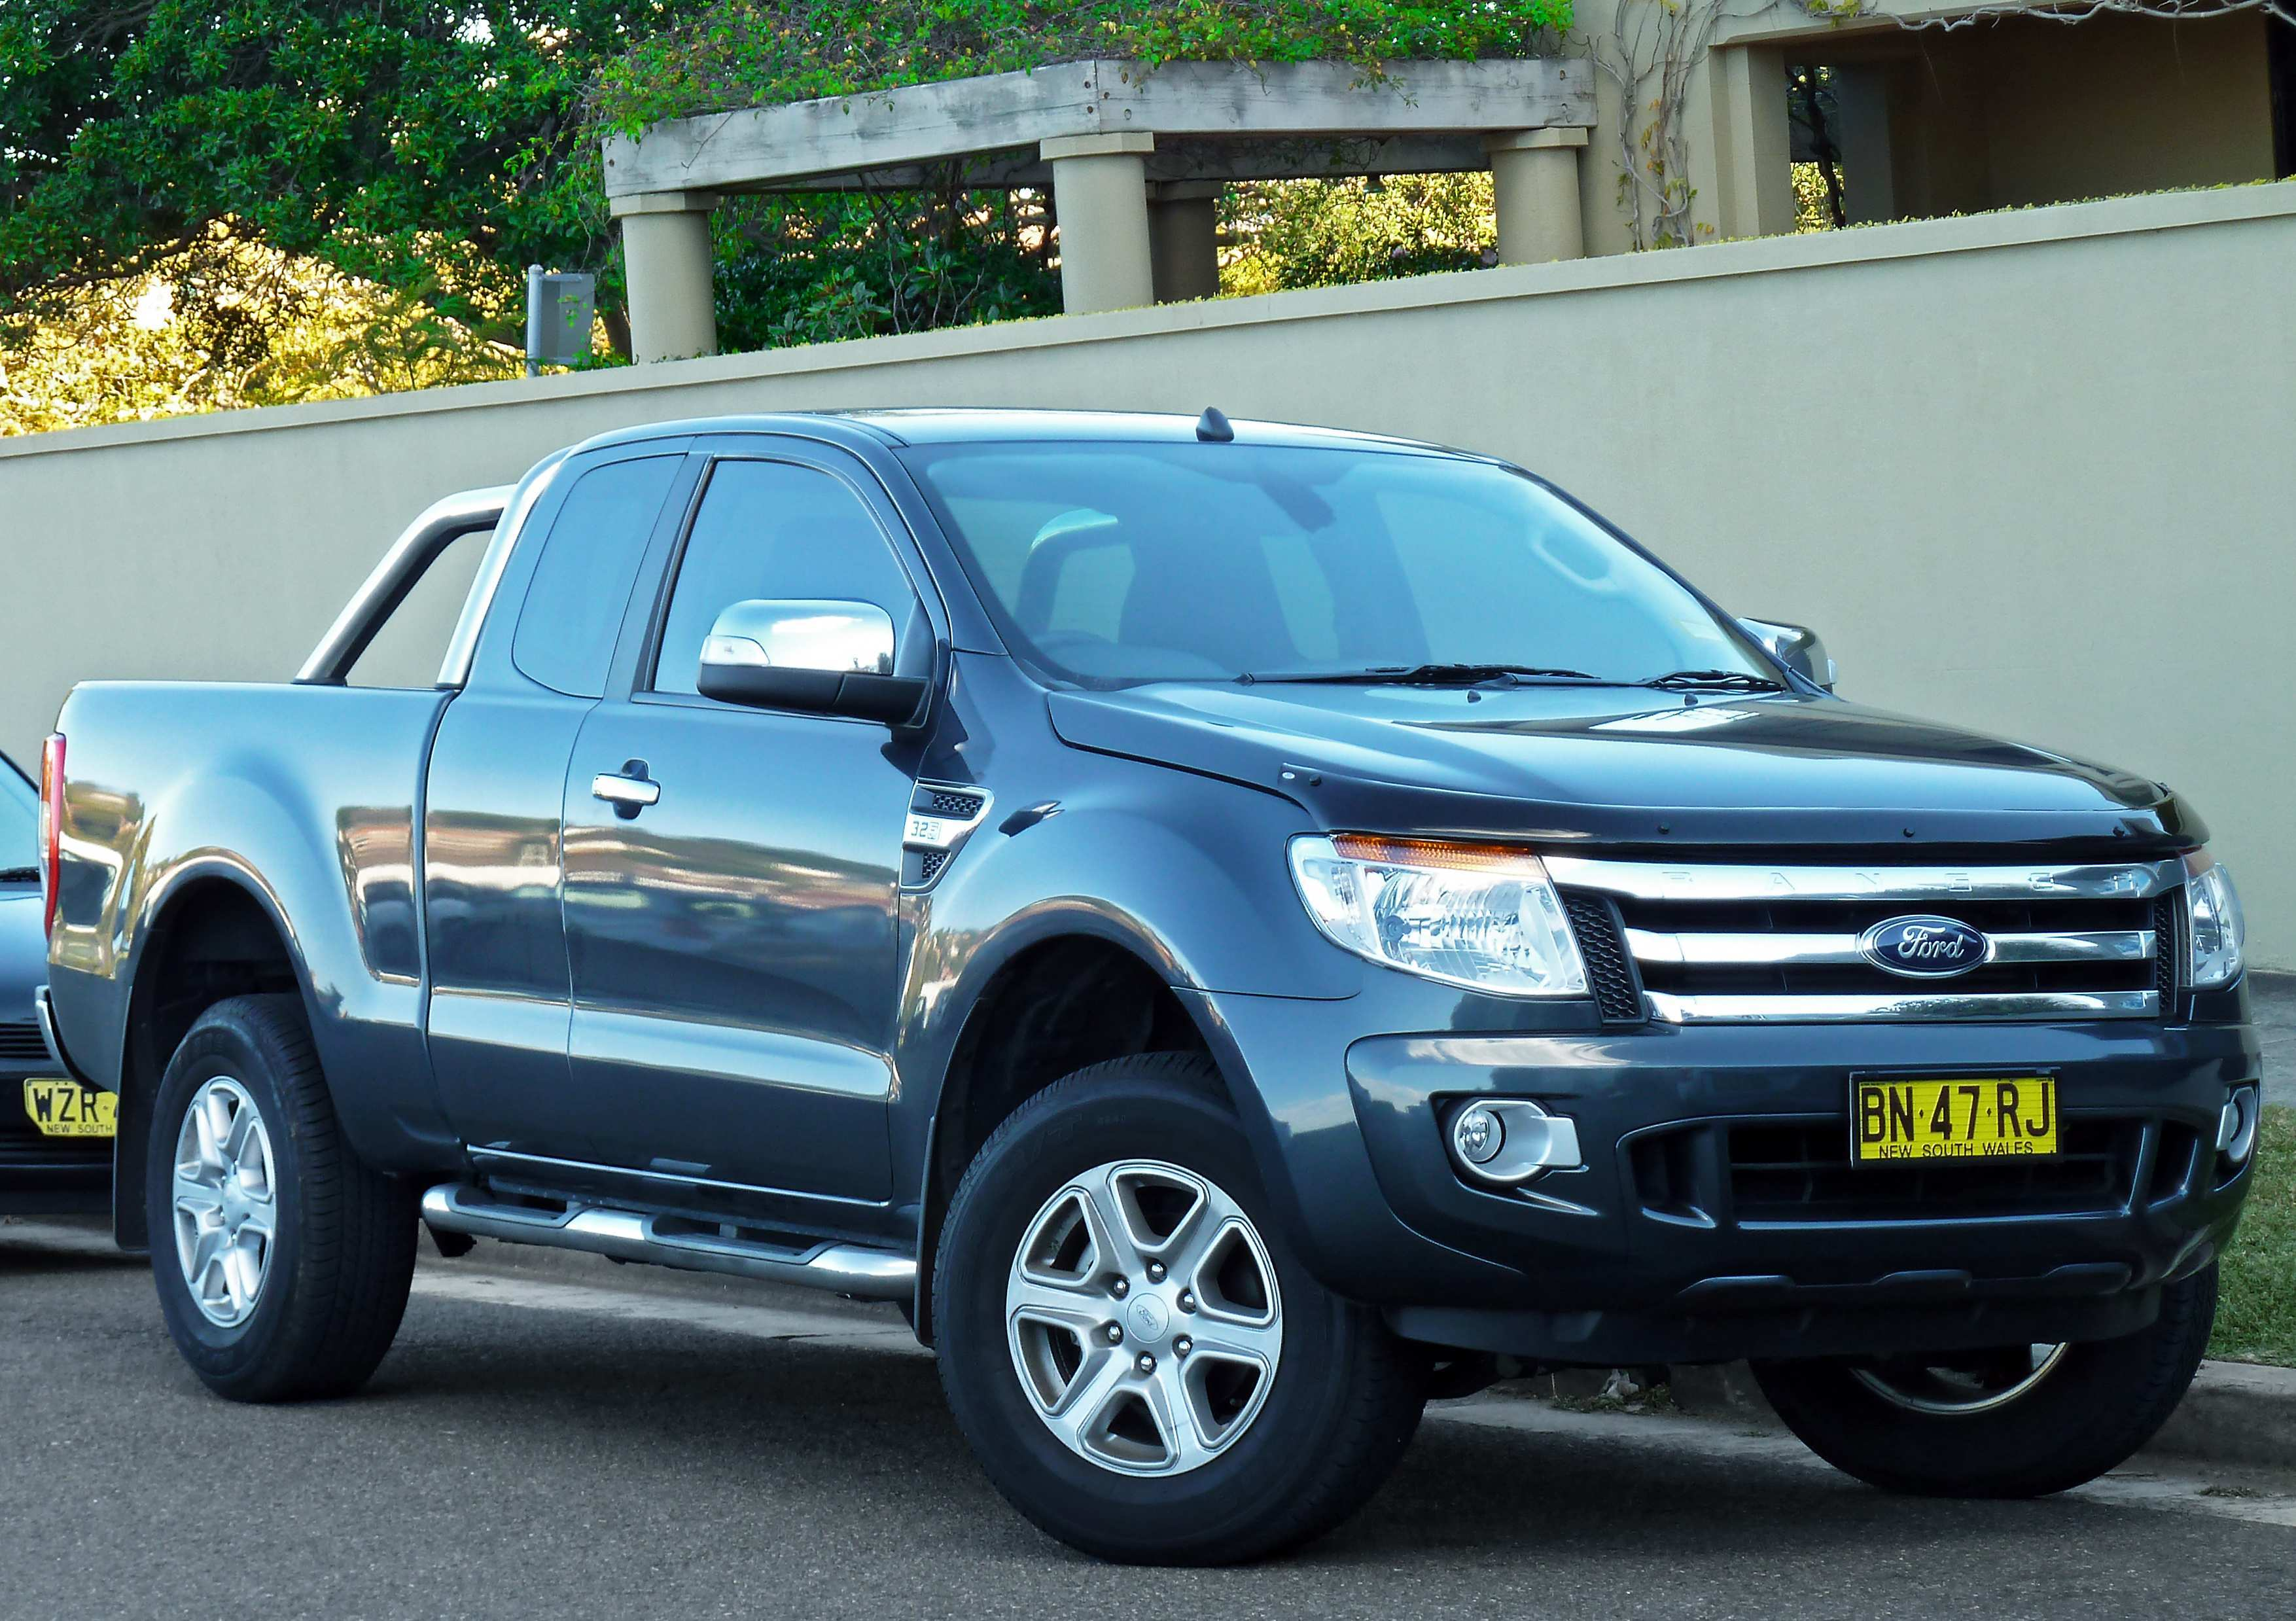 18 New 2019 Ford Ranger 2 Door Concept And Review